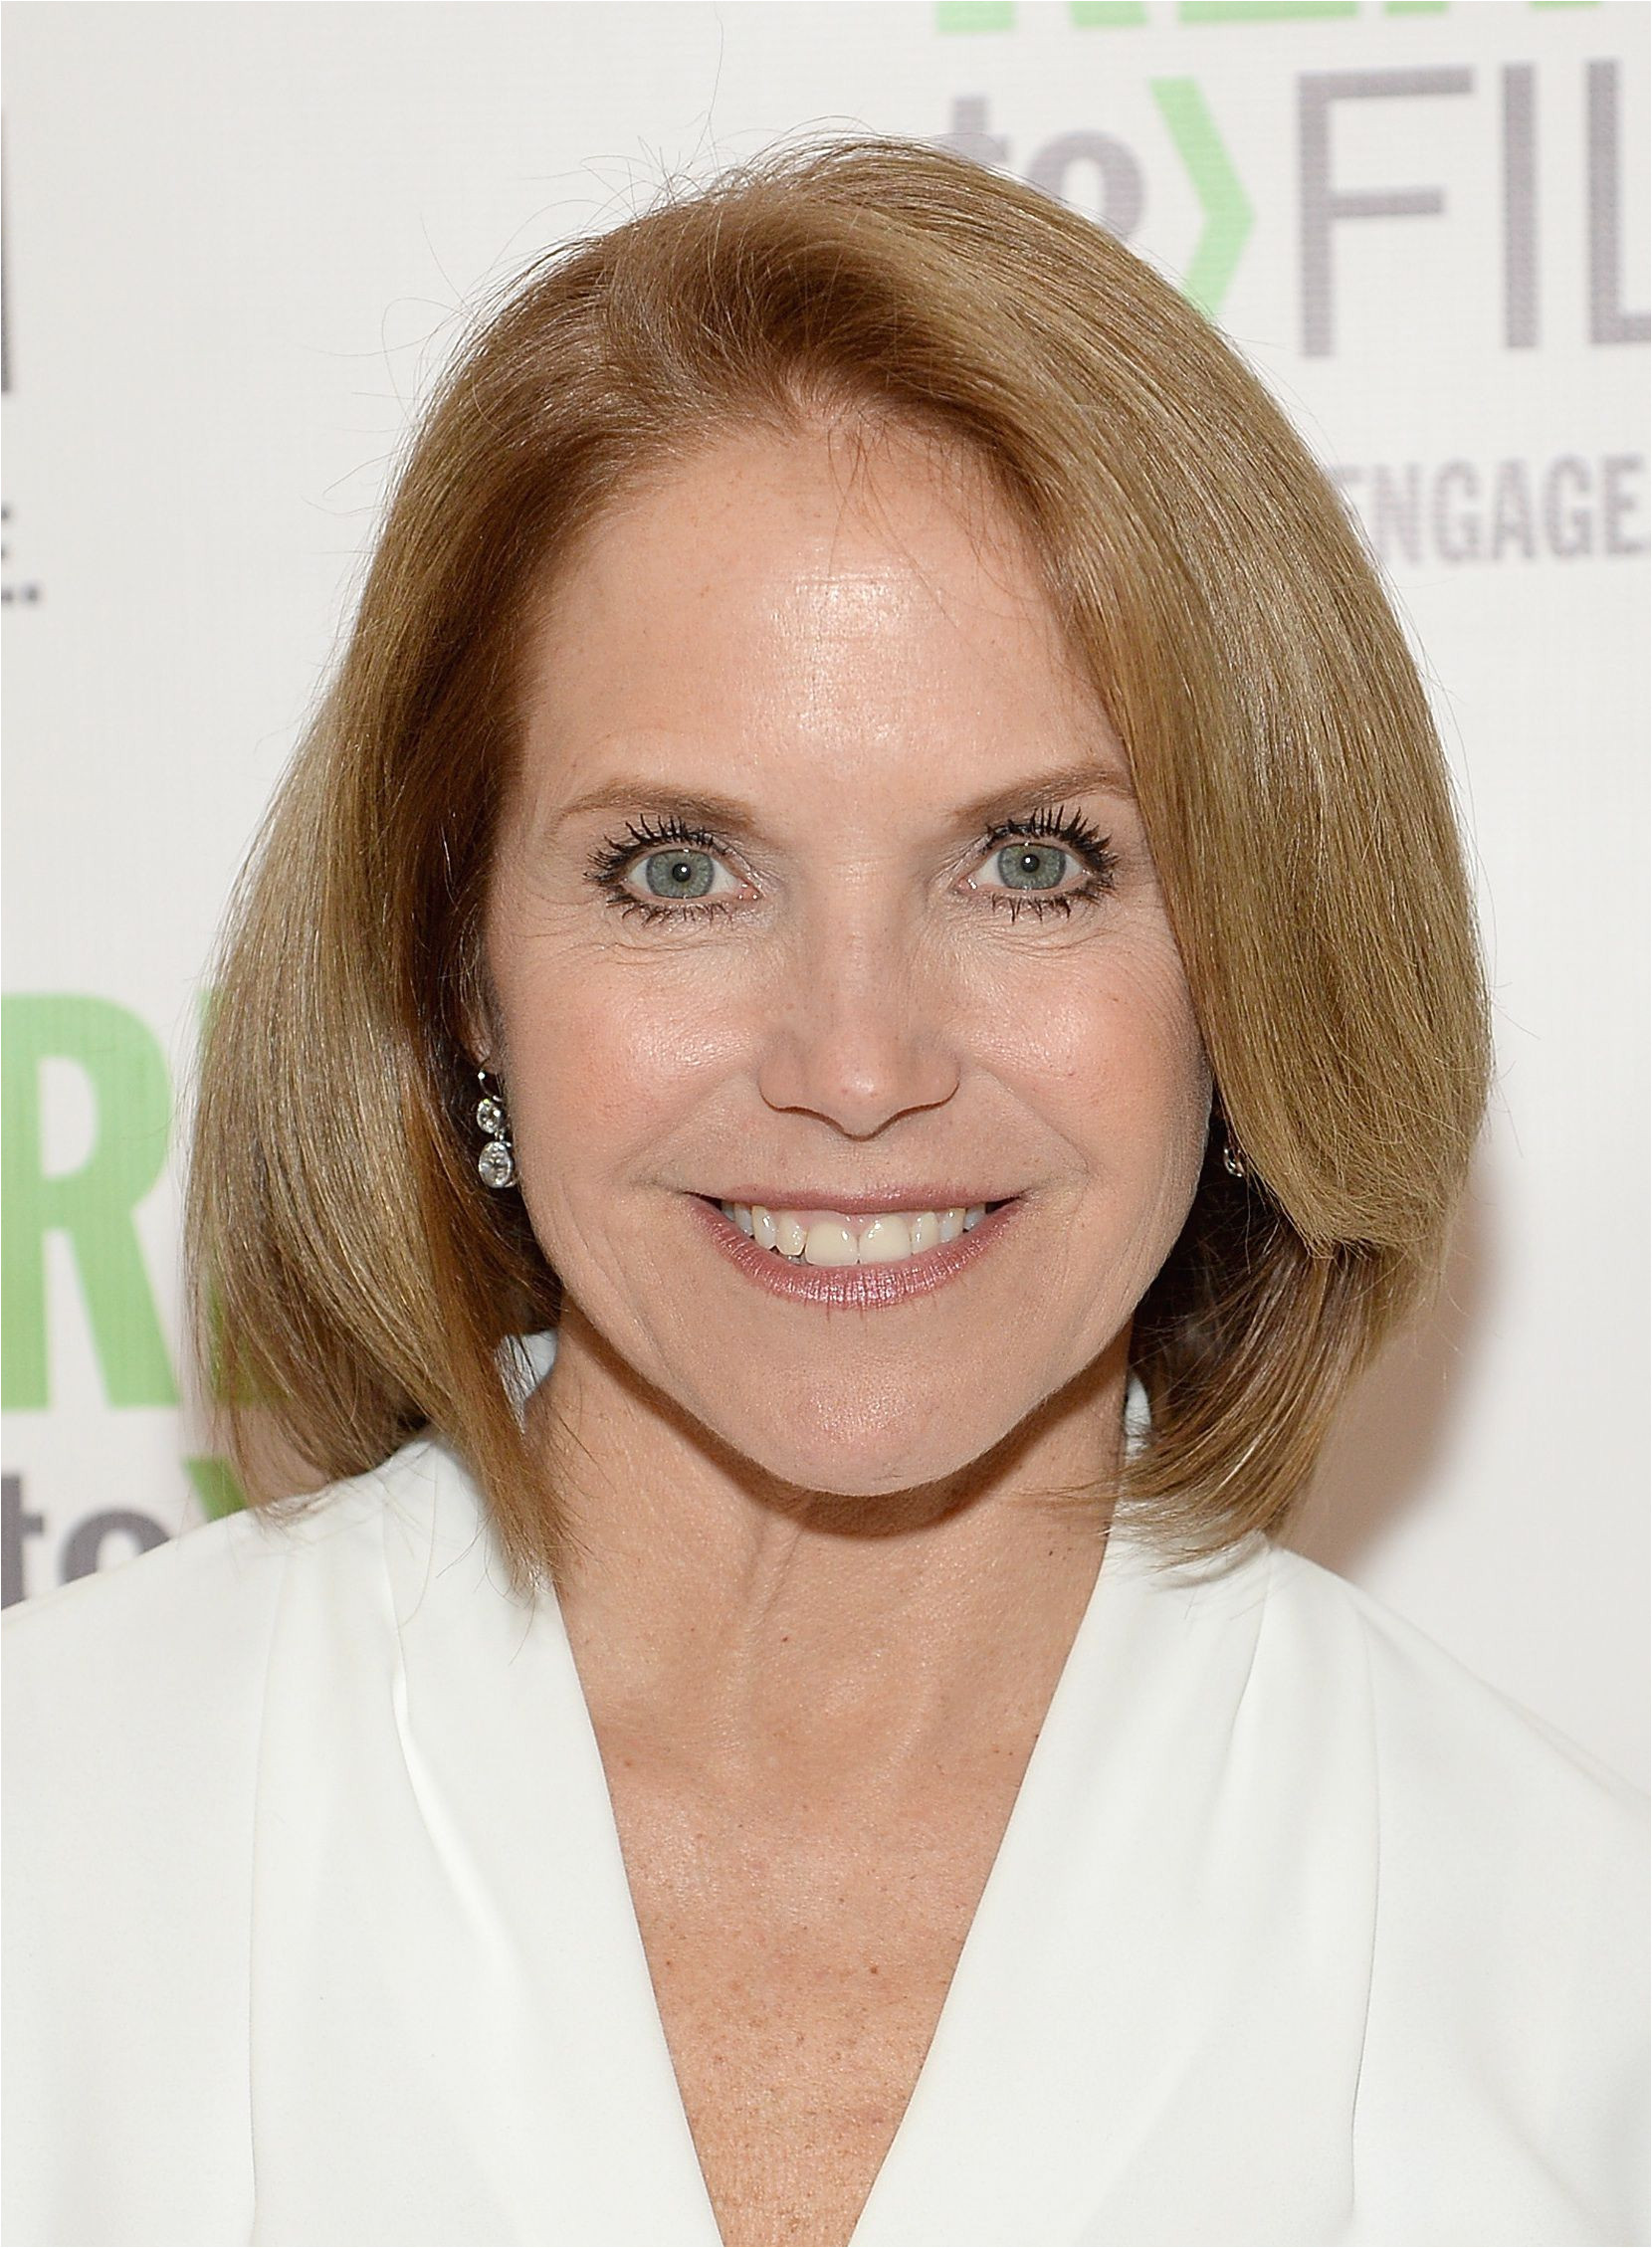 katie couric bob hairstyle 56a086c23df78cafdaa